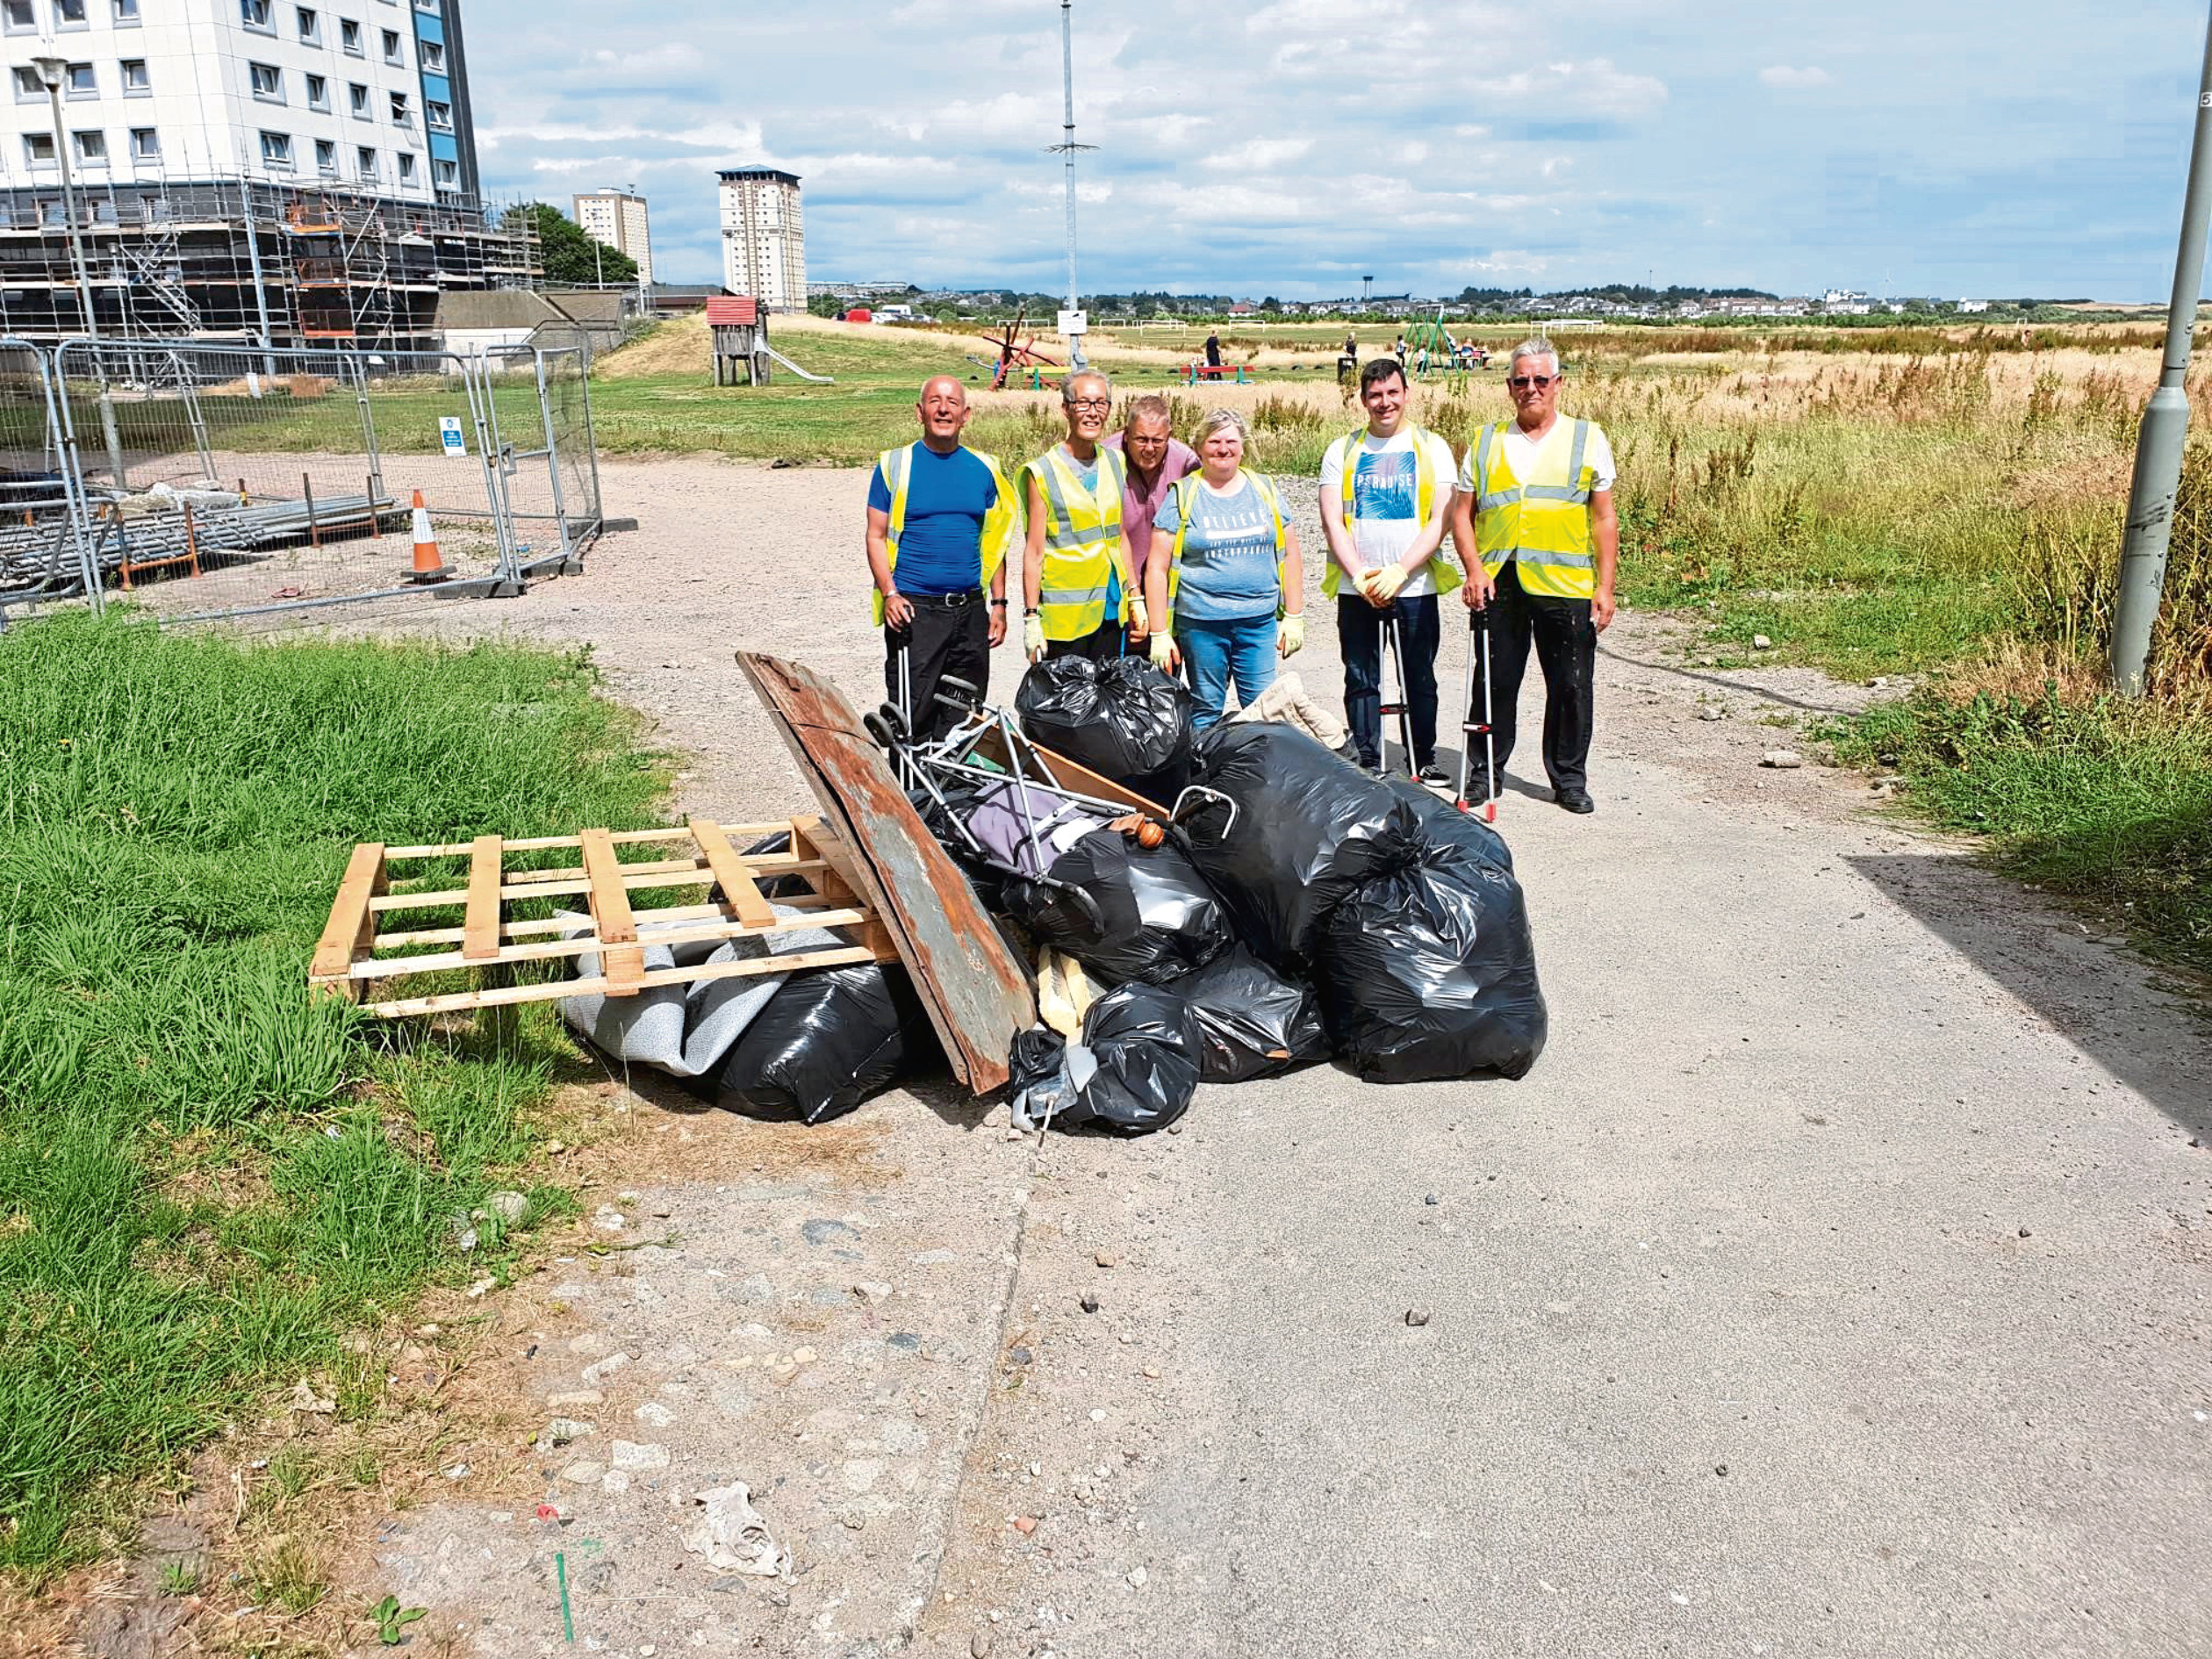 The residents organised the first clean-up of the area and gathered more than 20 bags of rubbish